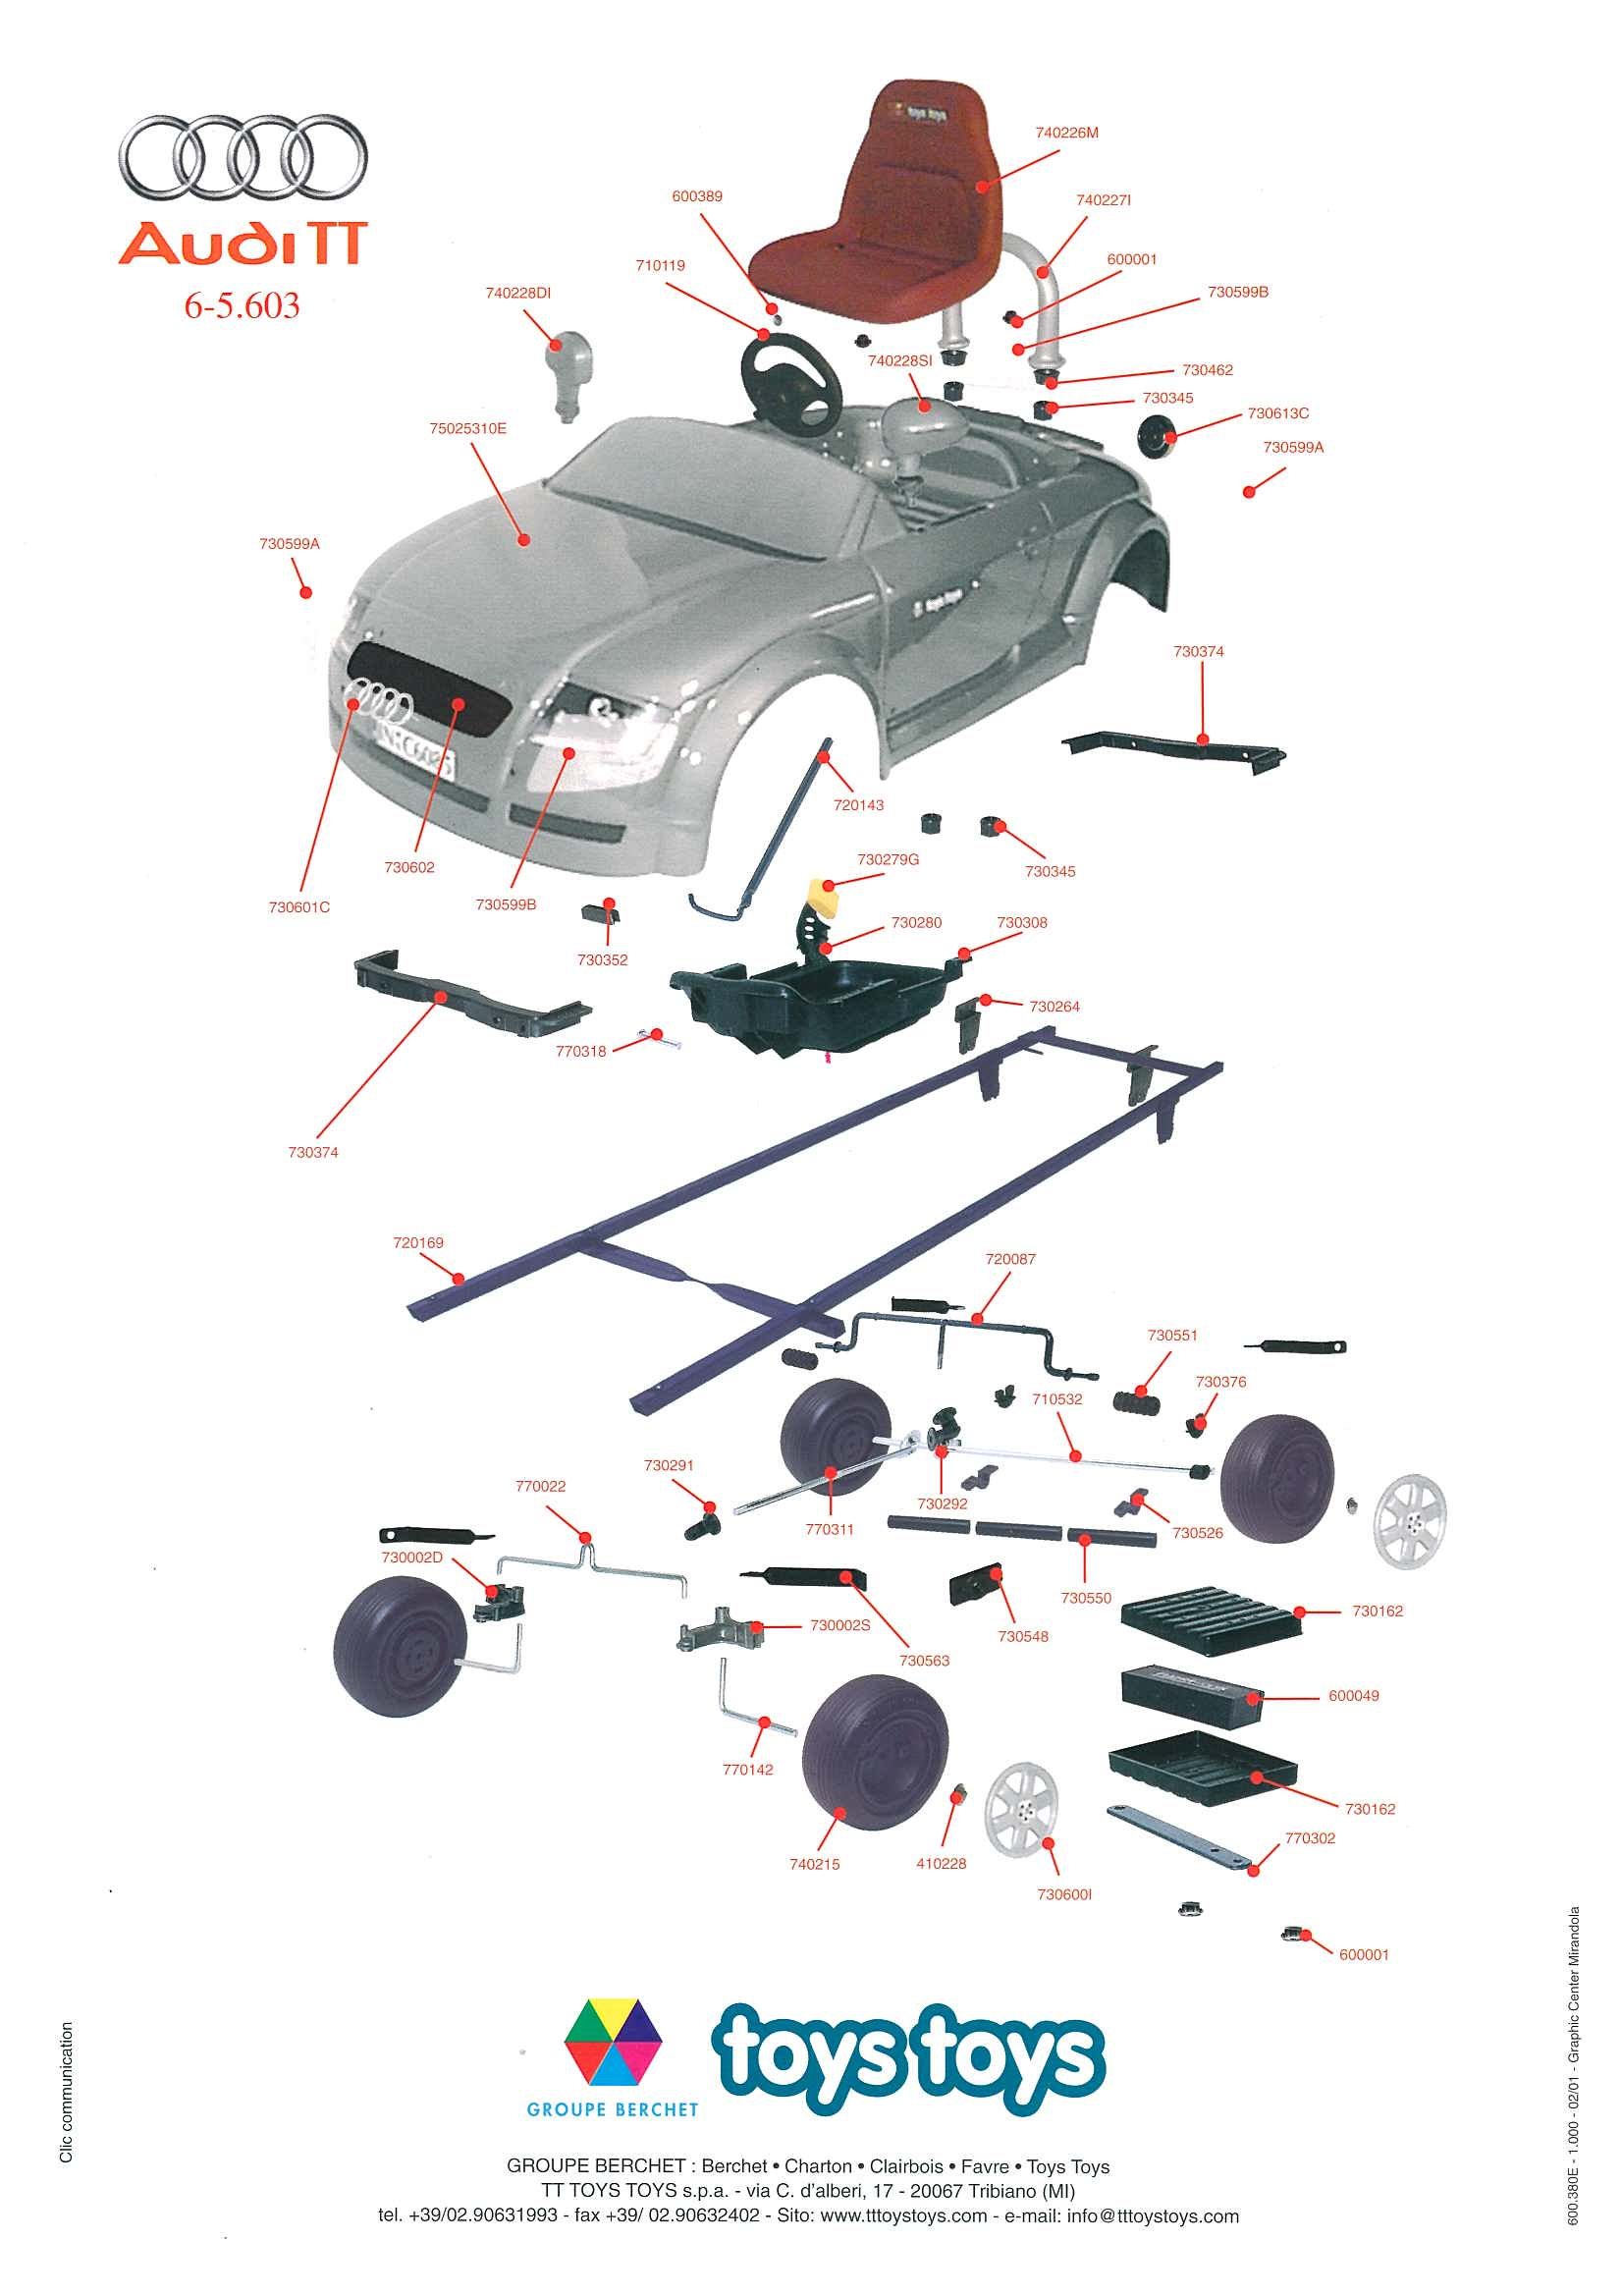 Toy Electric Cars Diagram Data Wiring Blog Car Schematic Get Free Image About Manuals Charging Stations